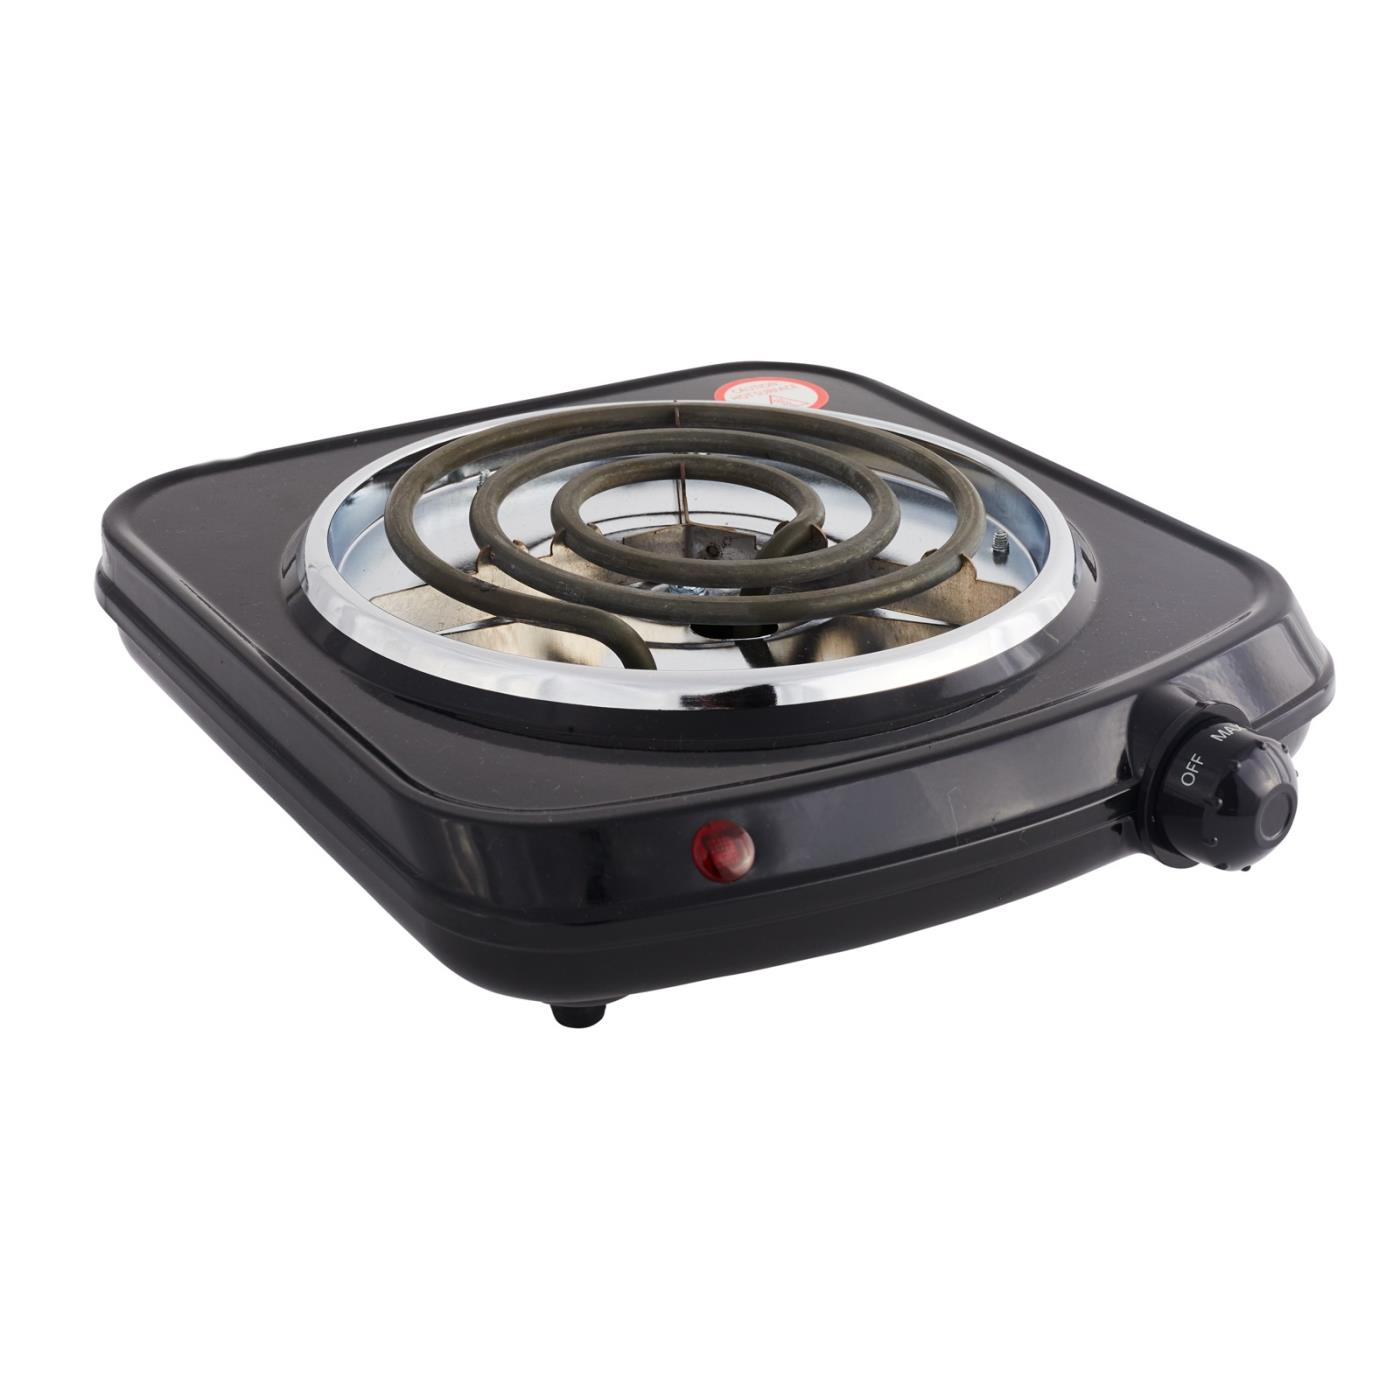 Electric Stove - Single Coil Burner